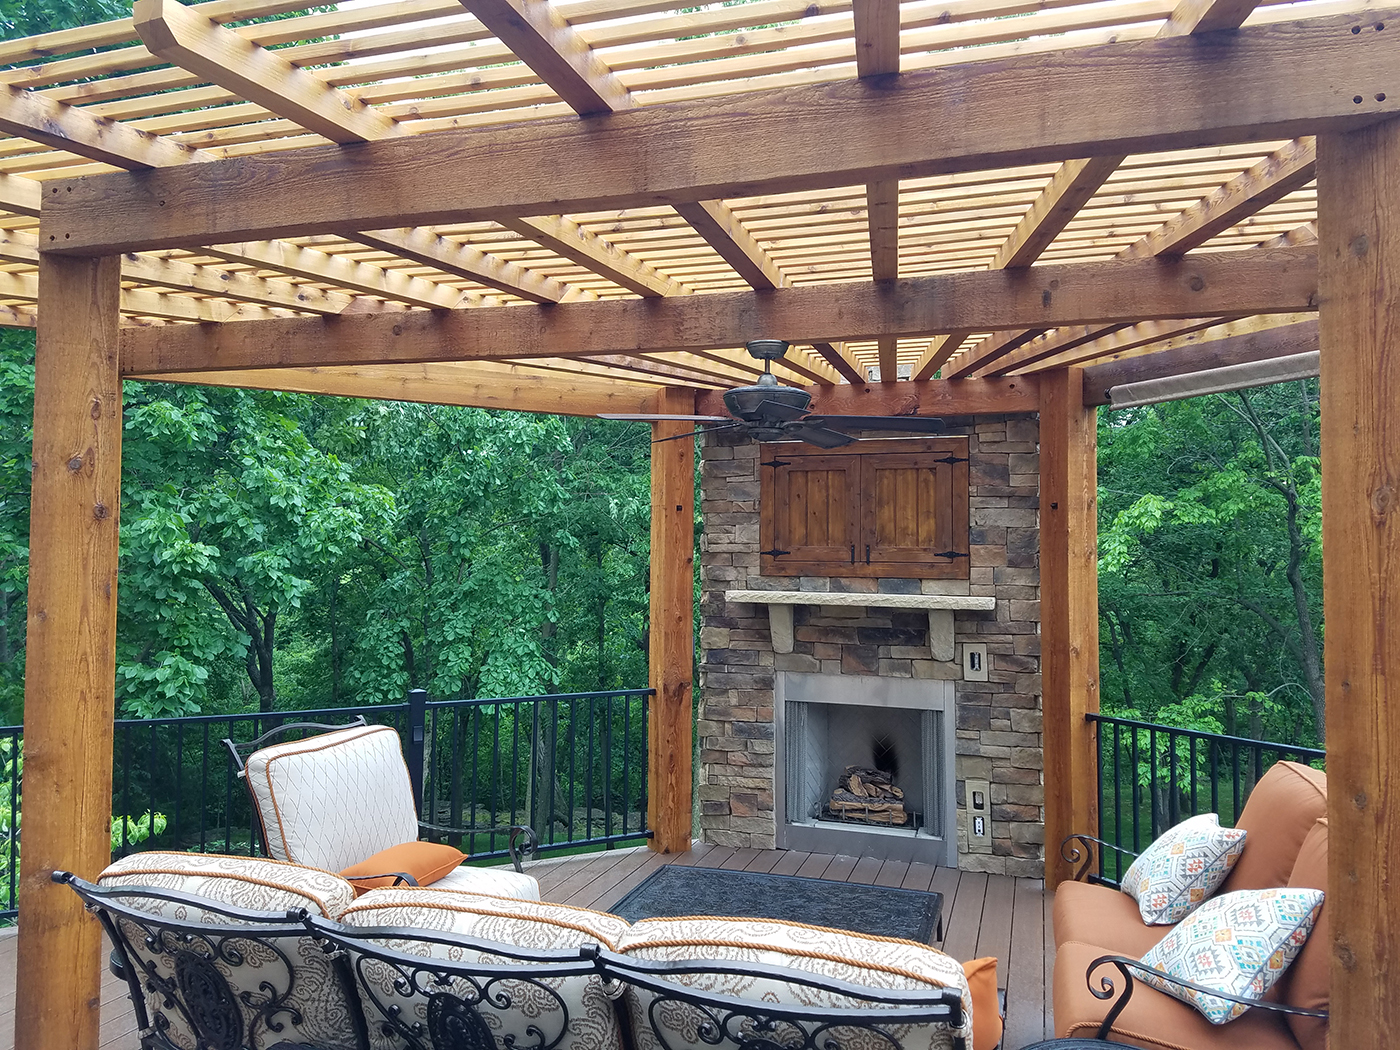 Blog   Archadeck Outdoor Living on Outdoor Gas Fireplace For Deck id=98755